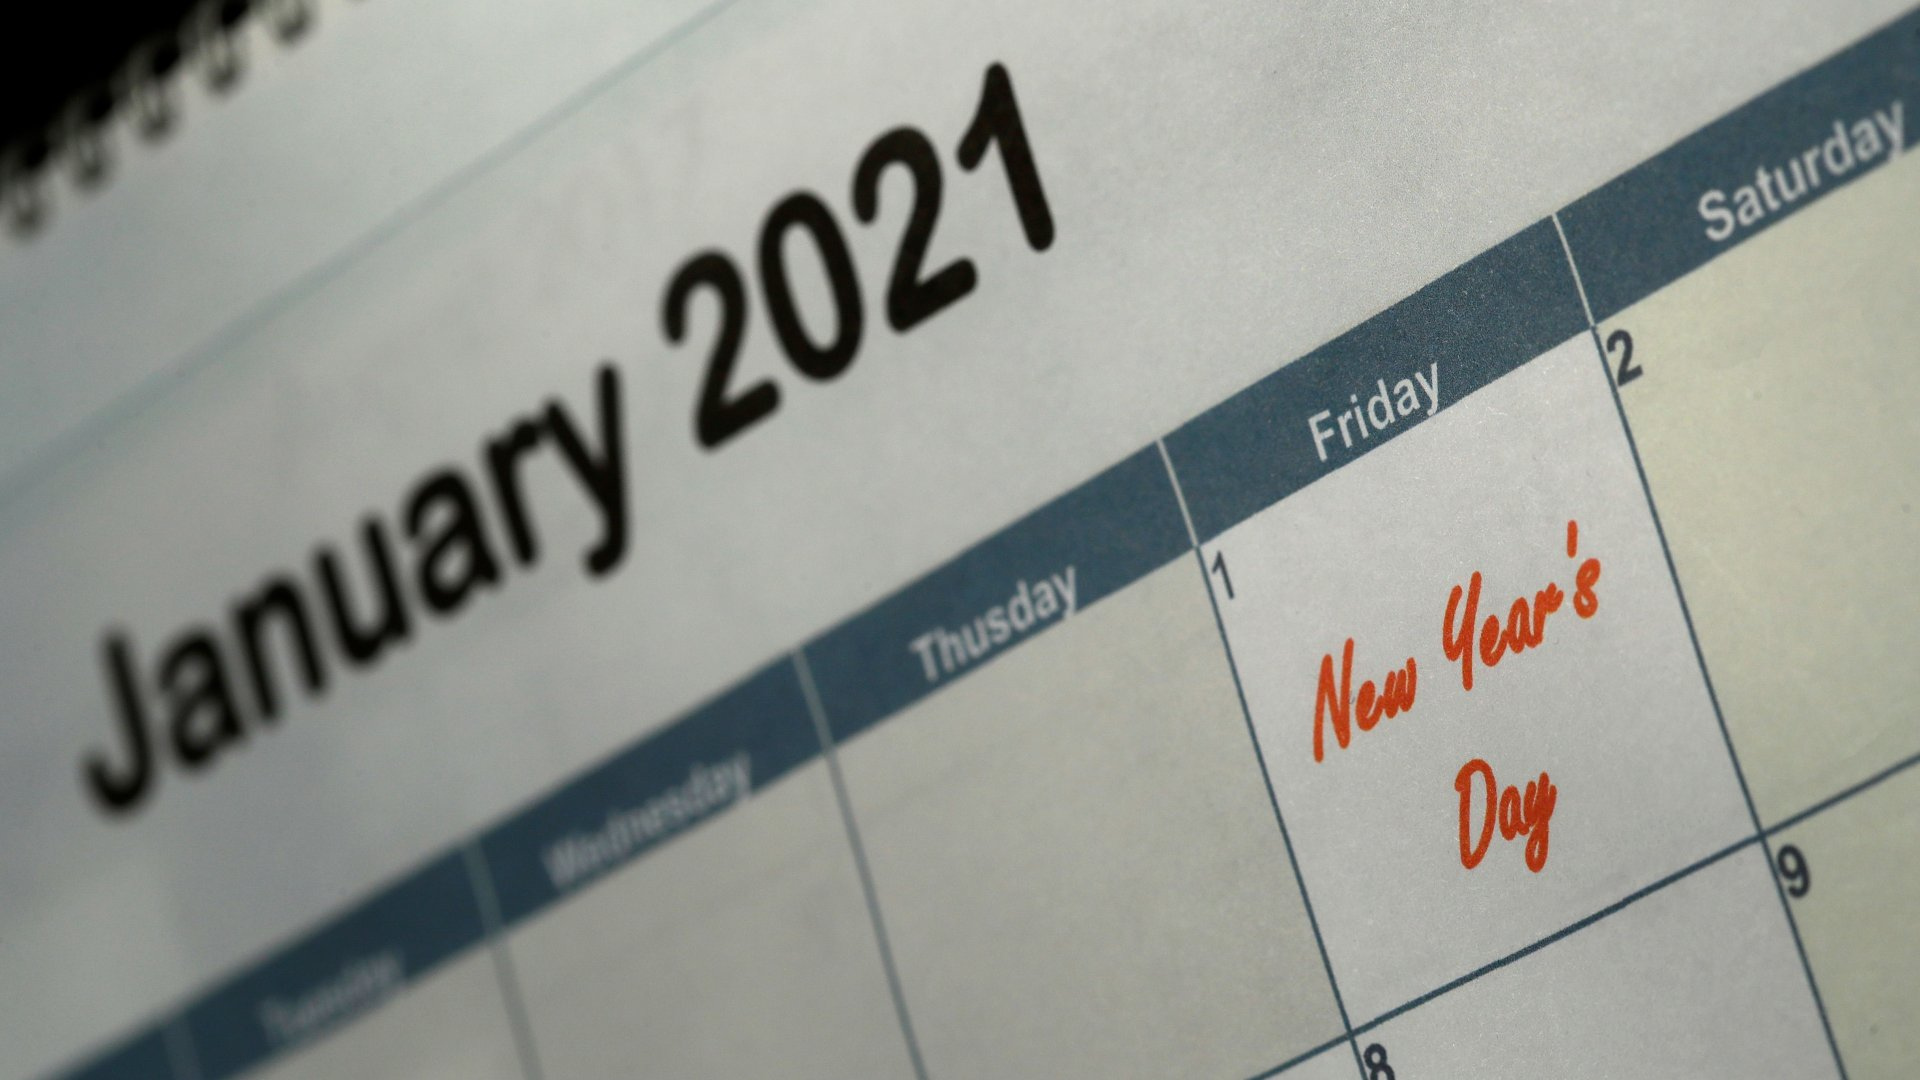 These New Year's Resolutions Can Save You $1,000 or More